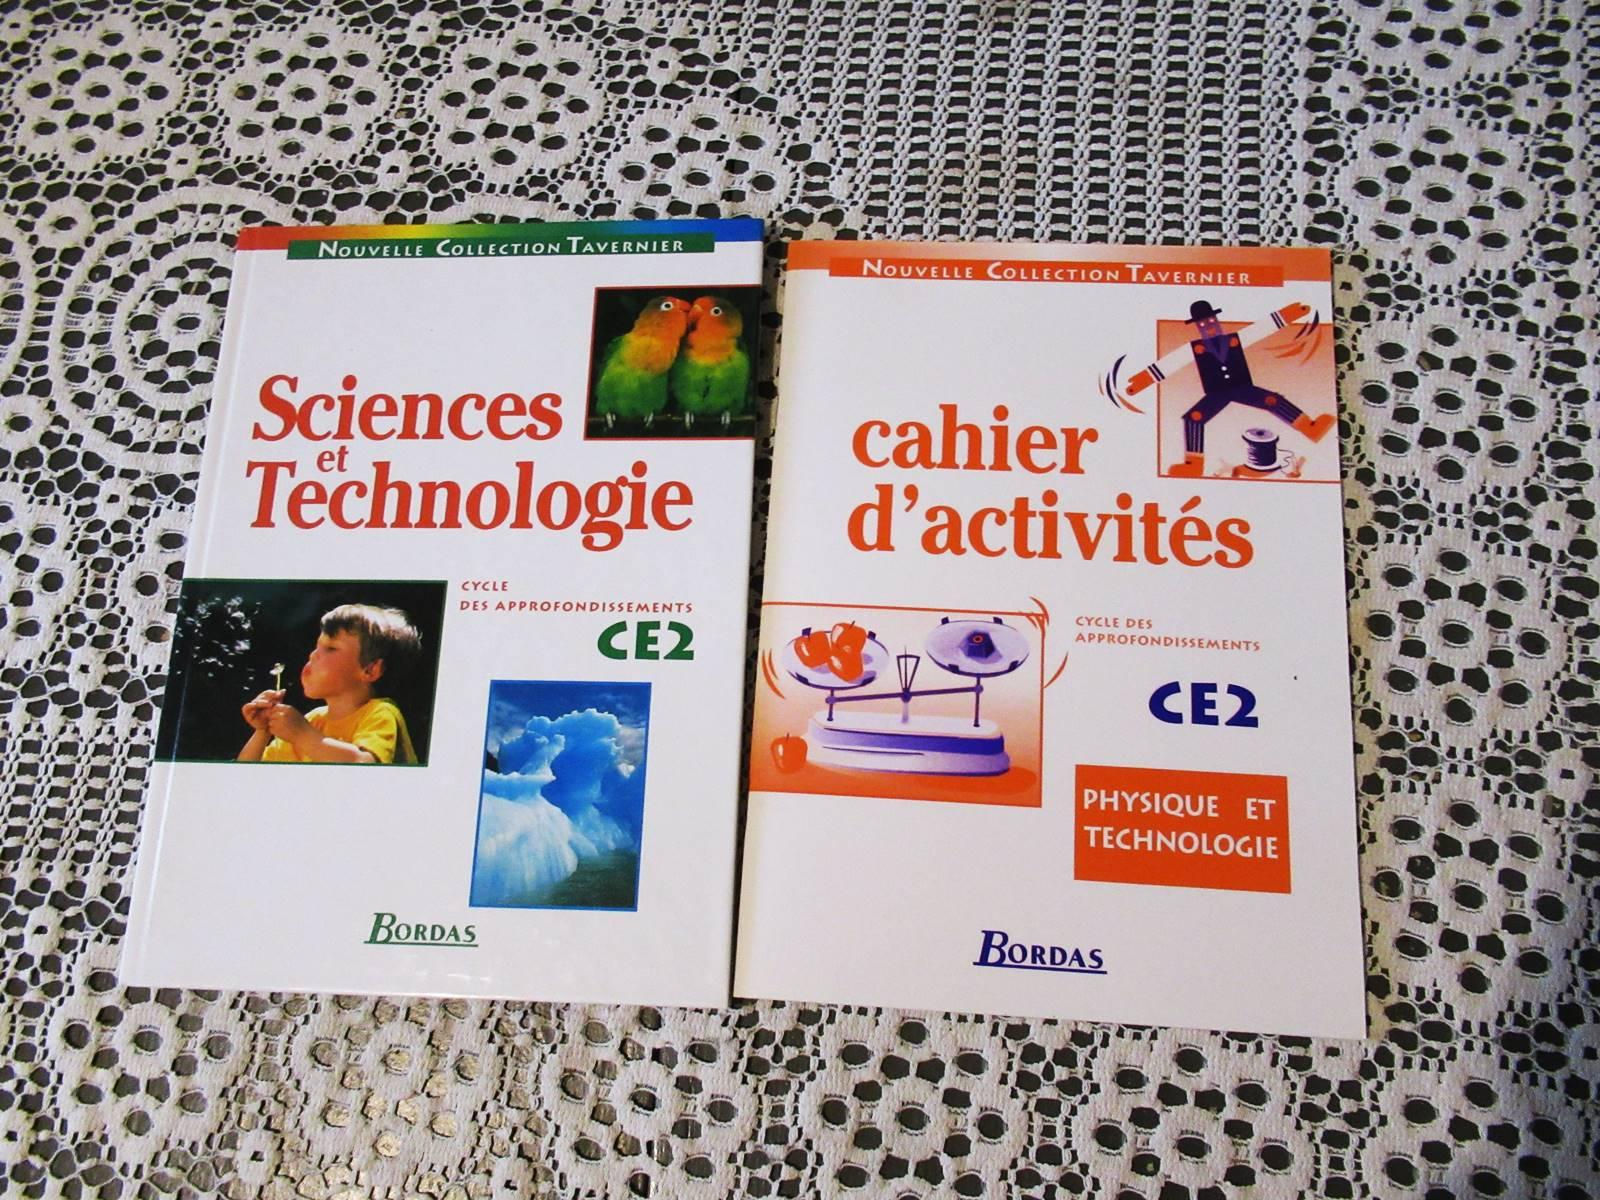 Manuel ce2 science technologie chimie bordas ief